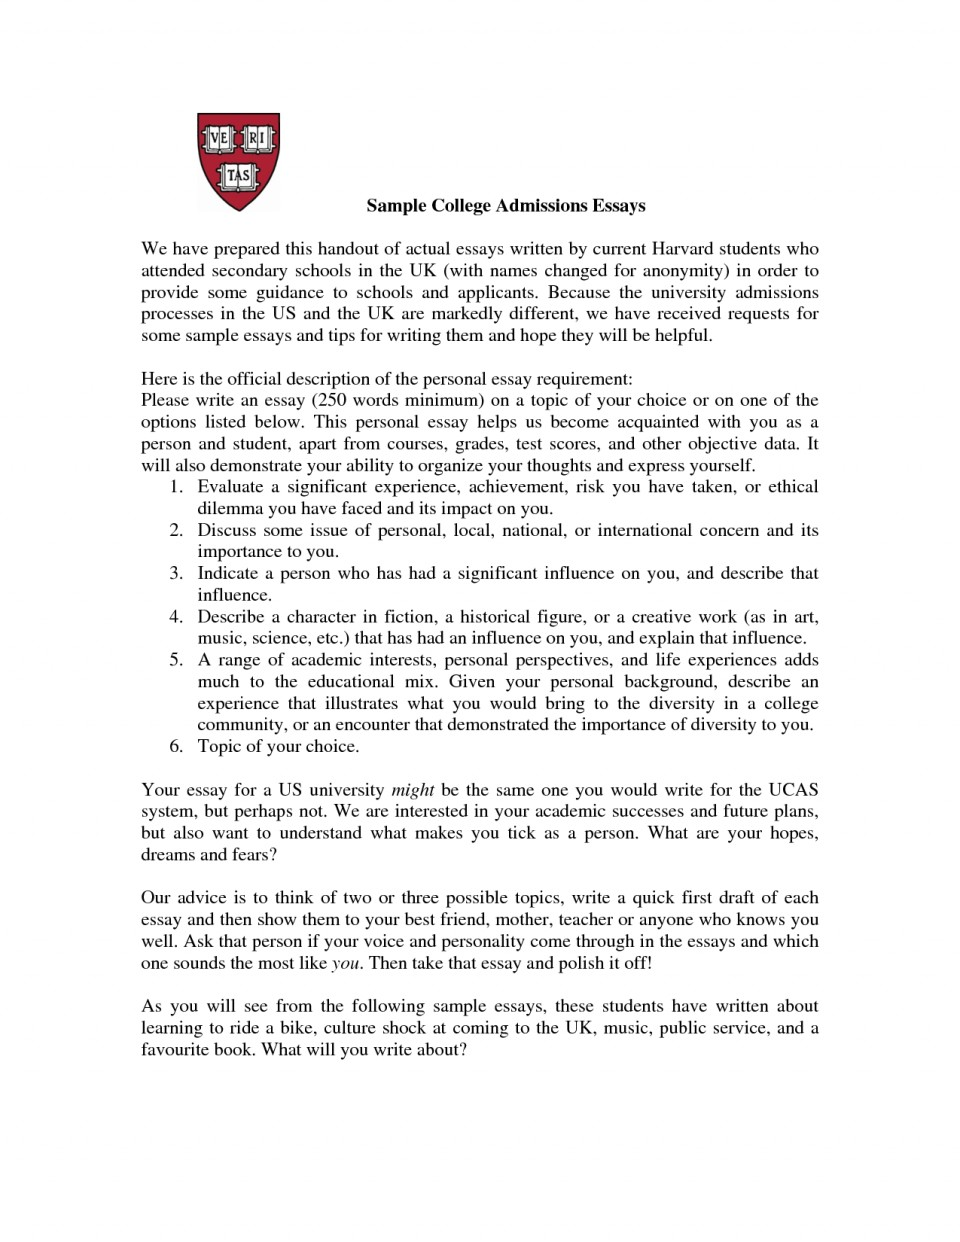 005 Harvard Acceptance Essays Essay Example Frightening 50 Successful Application Pdf Free 2017 3rd Edition 960